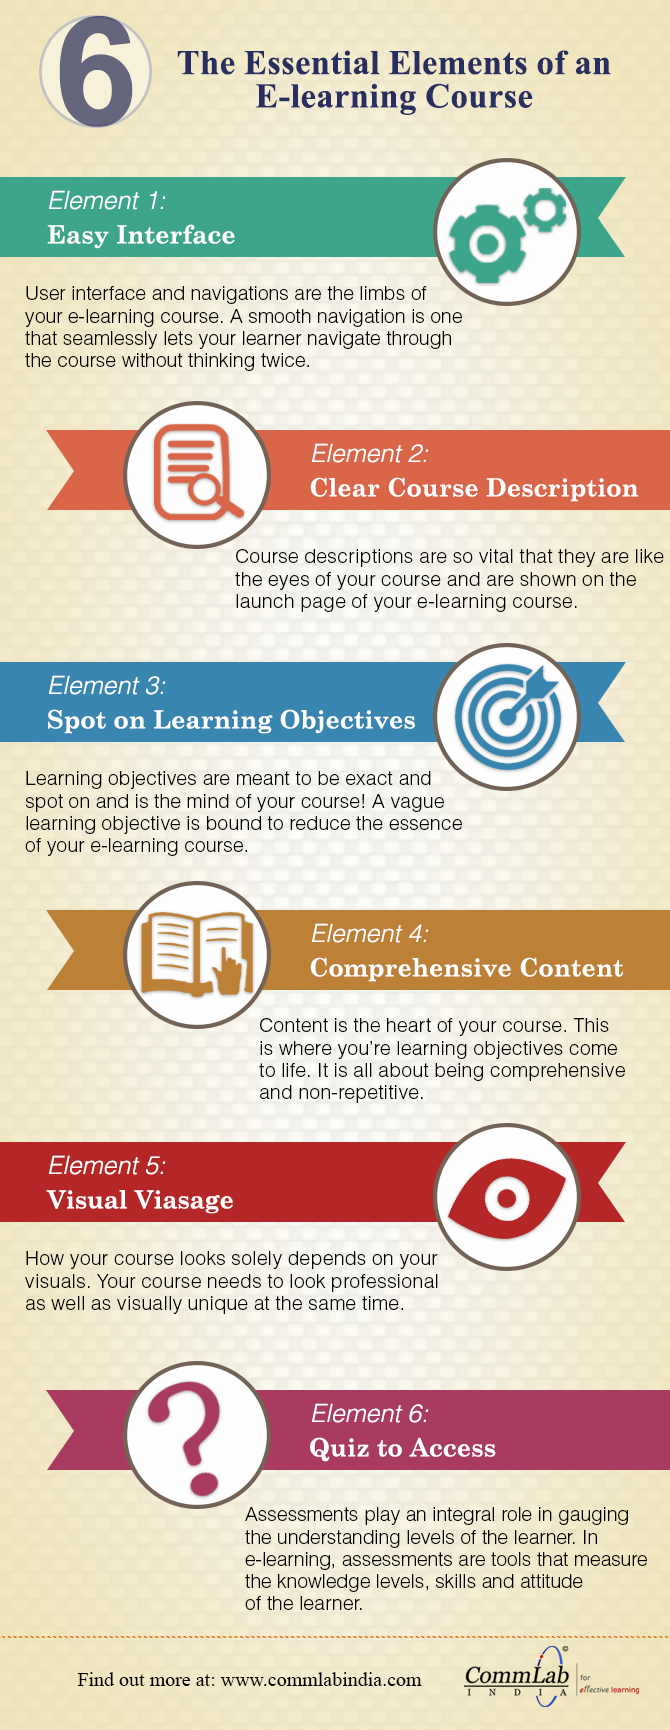 Developing a Good E-learning Course - 6 Aspects to Consider [Infographic]